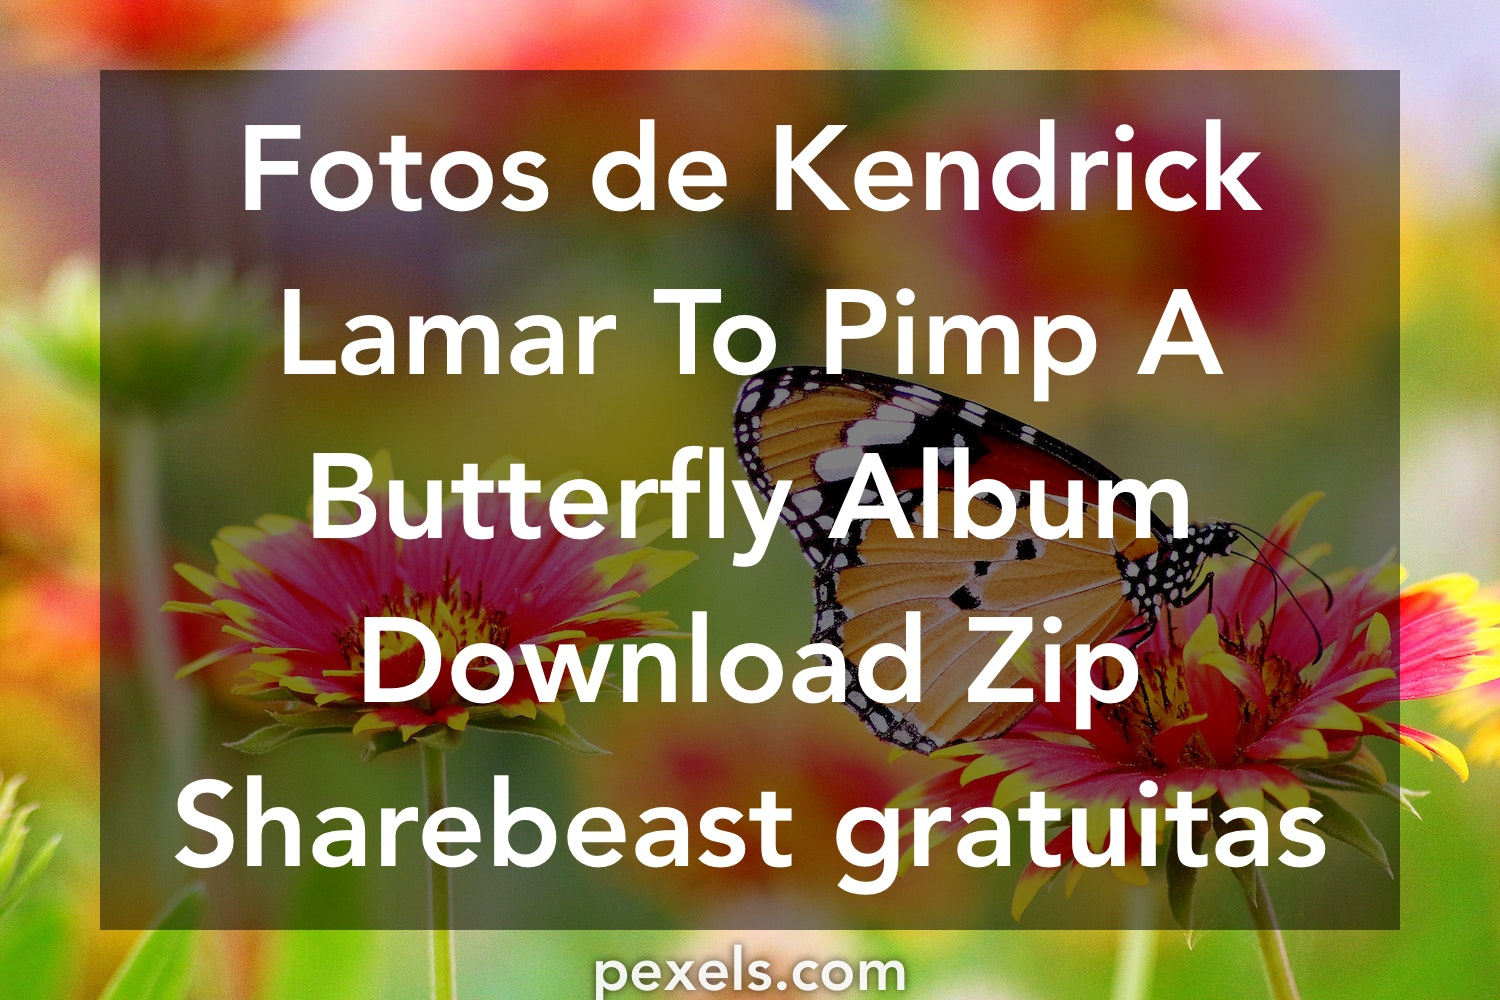 to pimp a butterfly download zip sharebeast